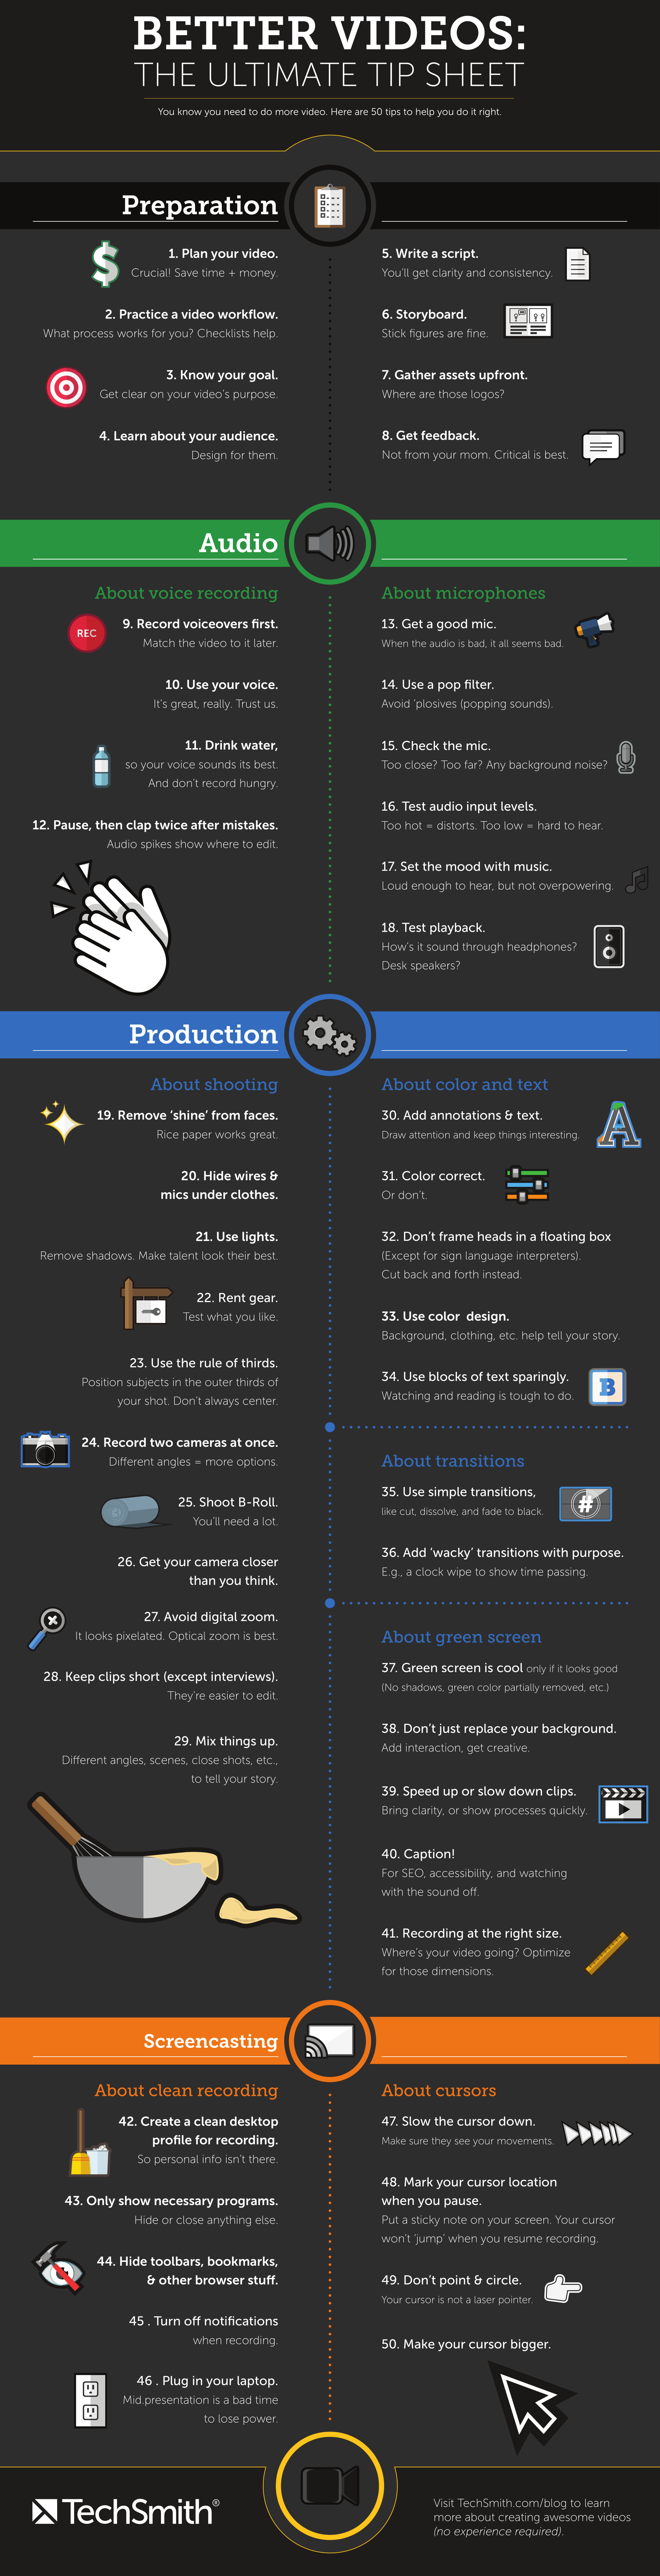 Infographic: Video Production Tips